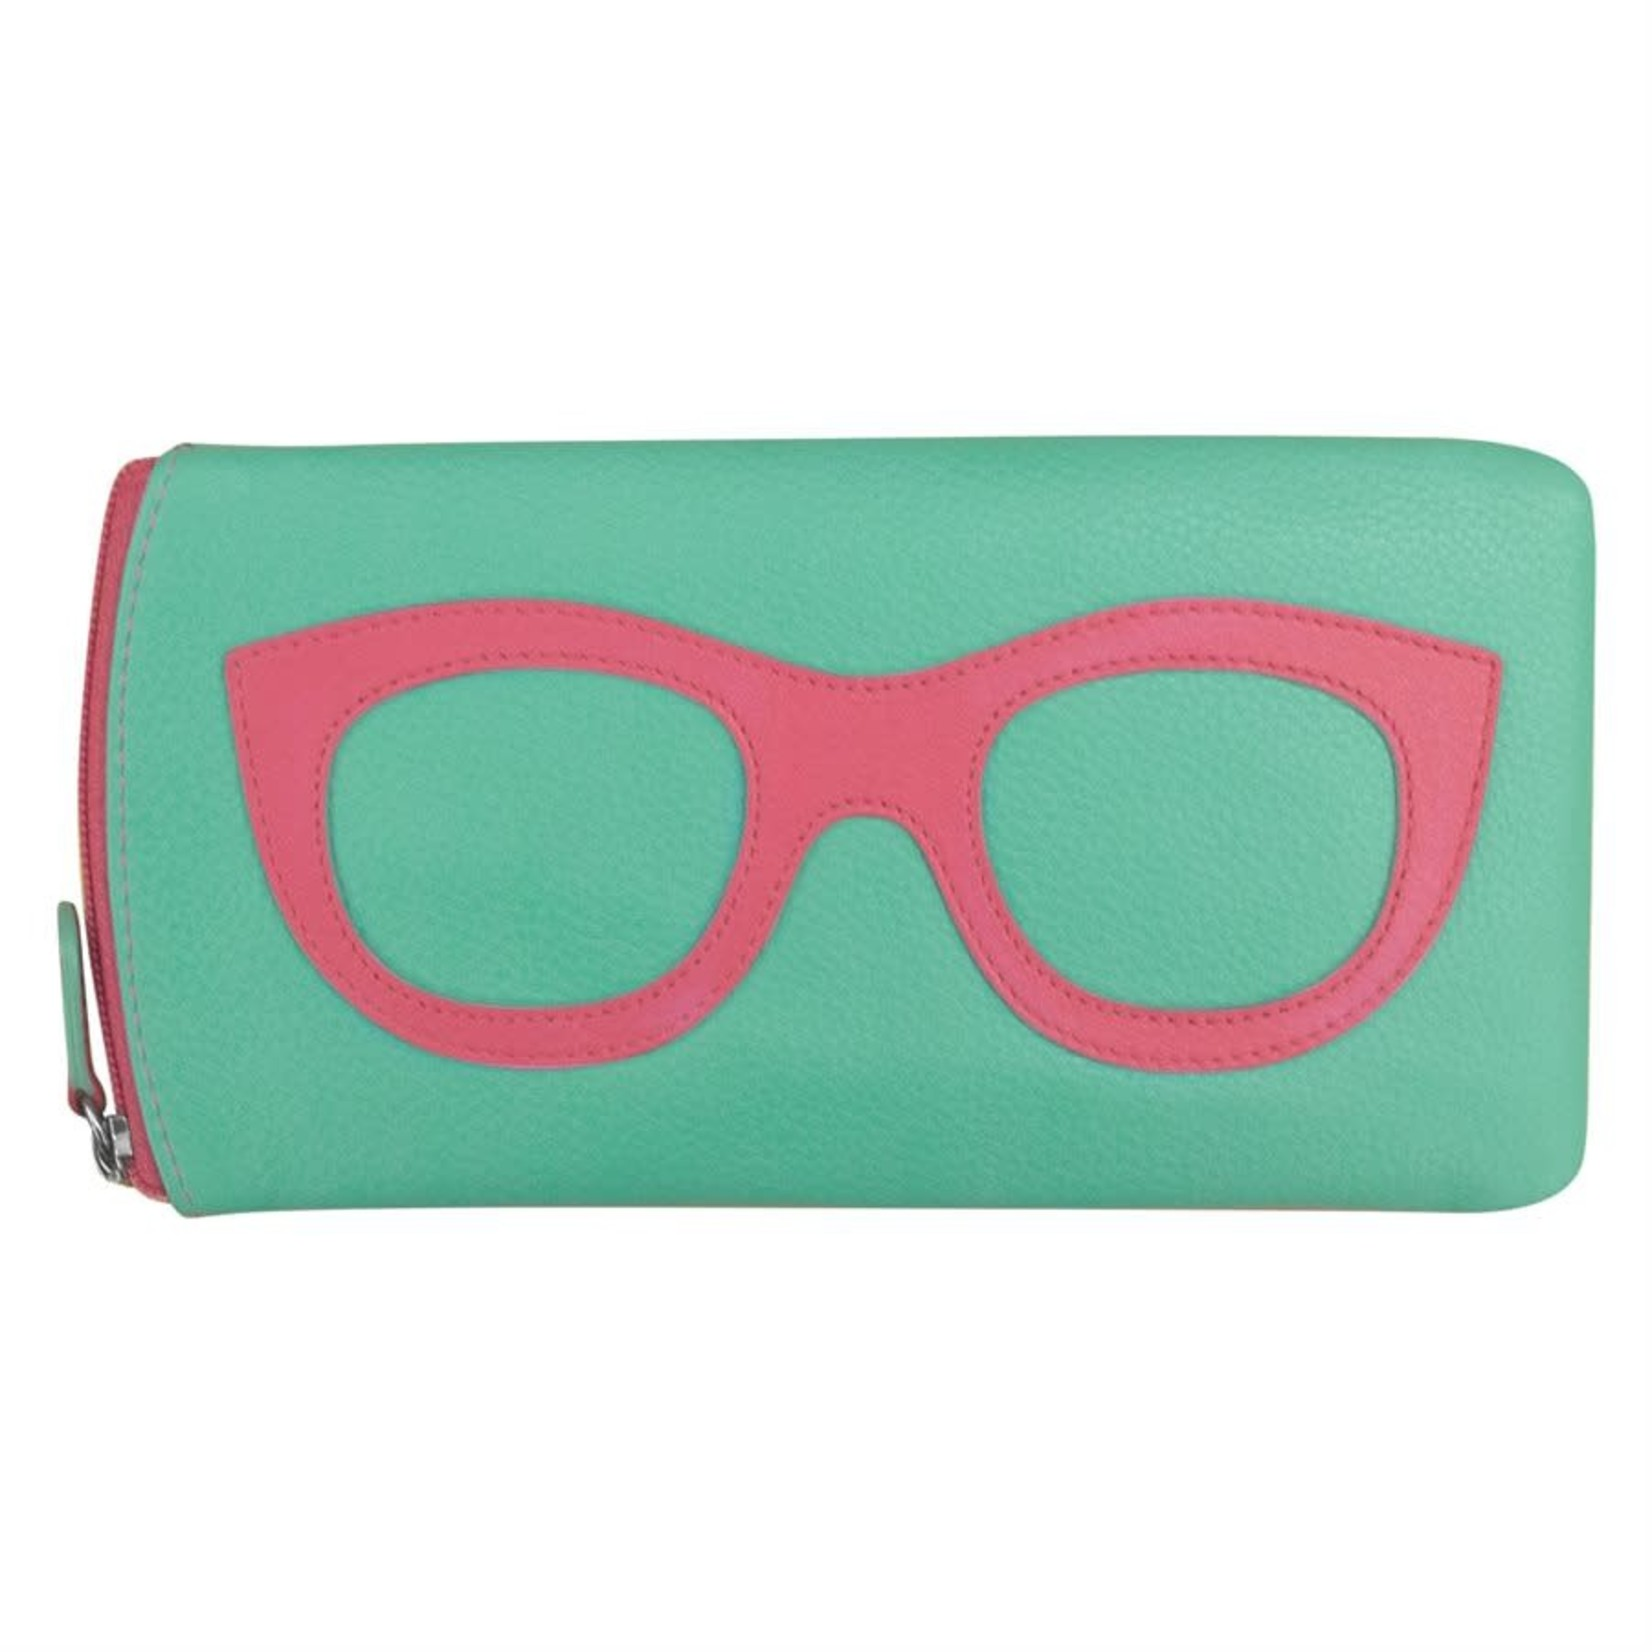 Leather Handbags and Accessories 6462 Turquoise/Hot Pink - Leather Eyeglass Case